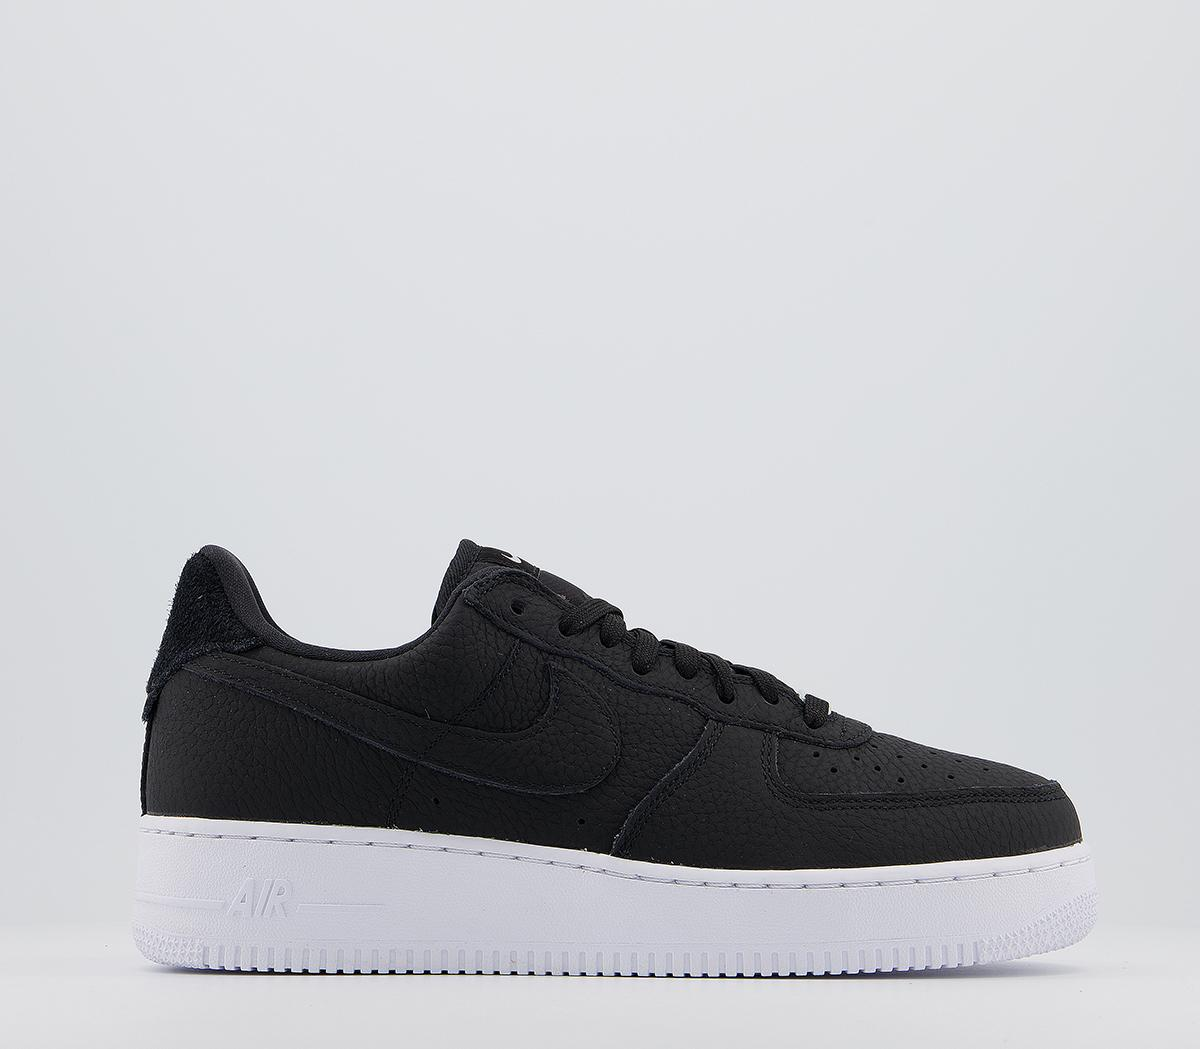 Telemacos Fuerza Ru  Nike Air Force 1 07 Trainers Craft Black Black White Vast Grey - His  trainers